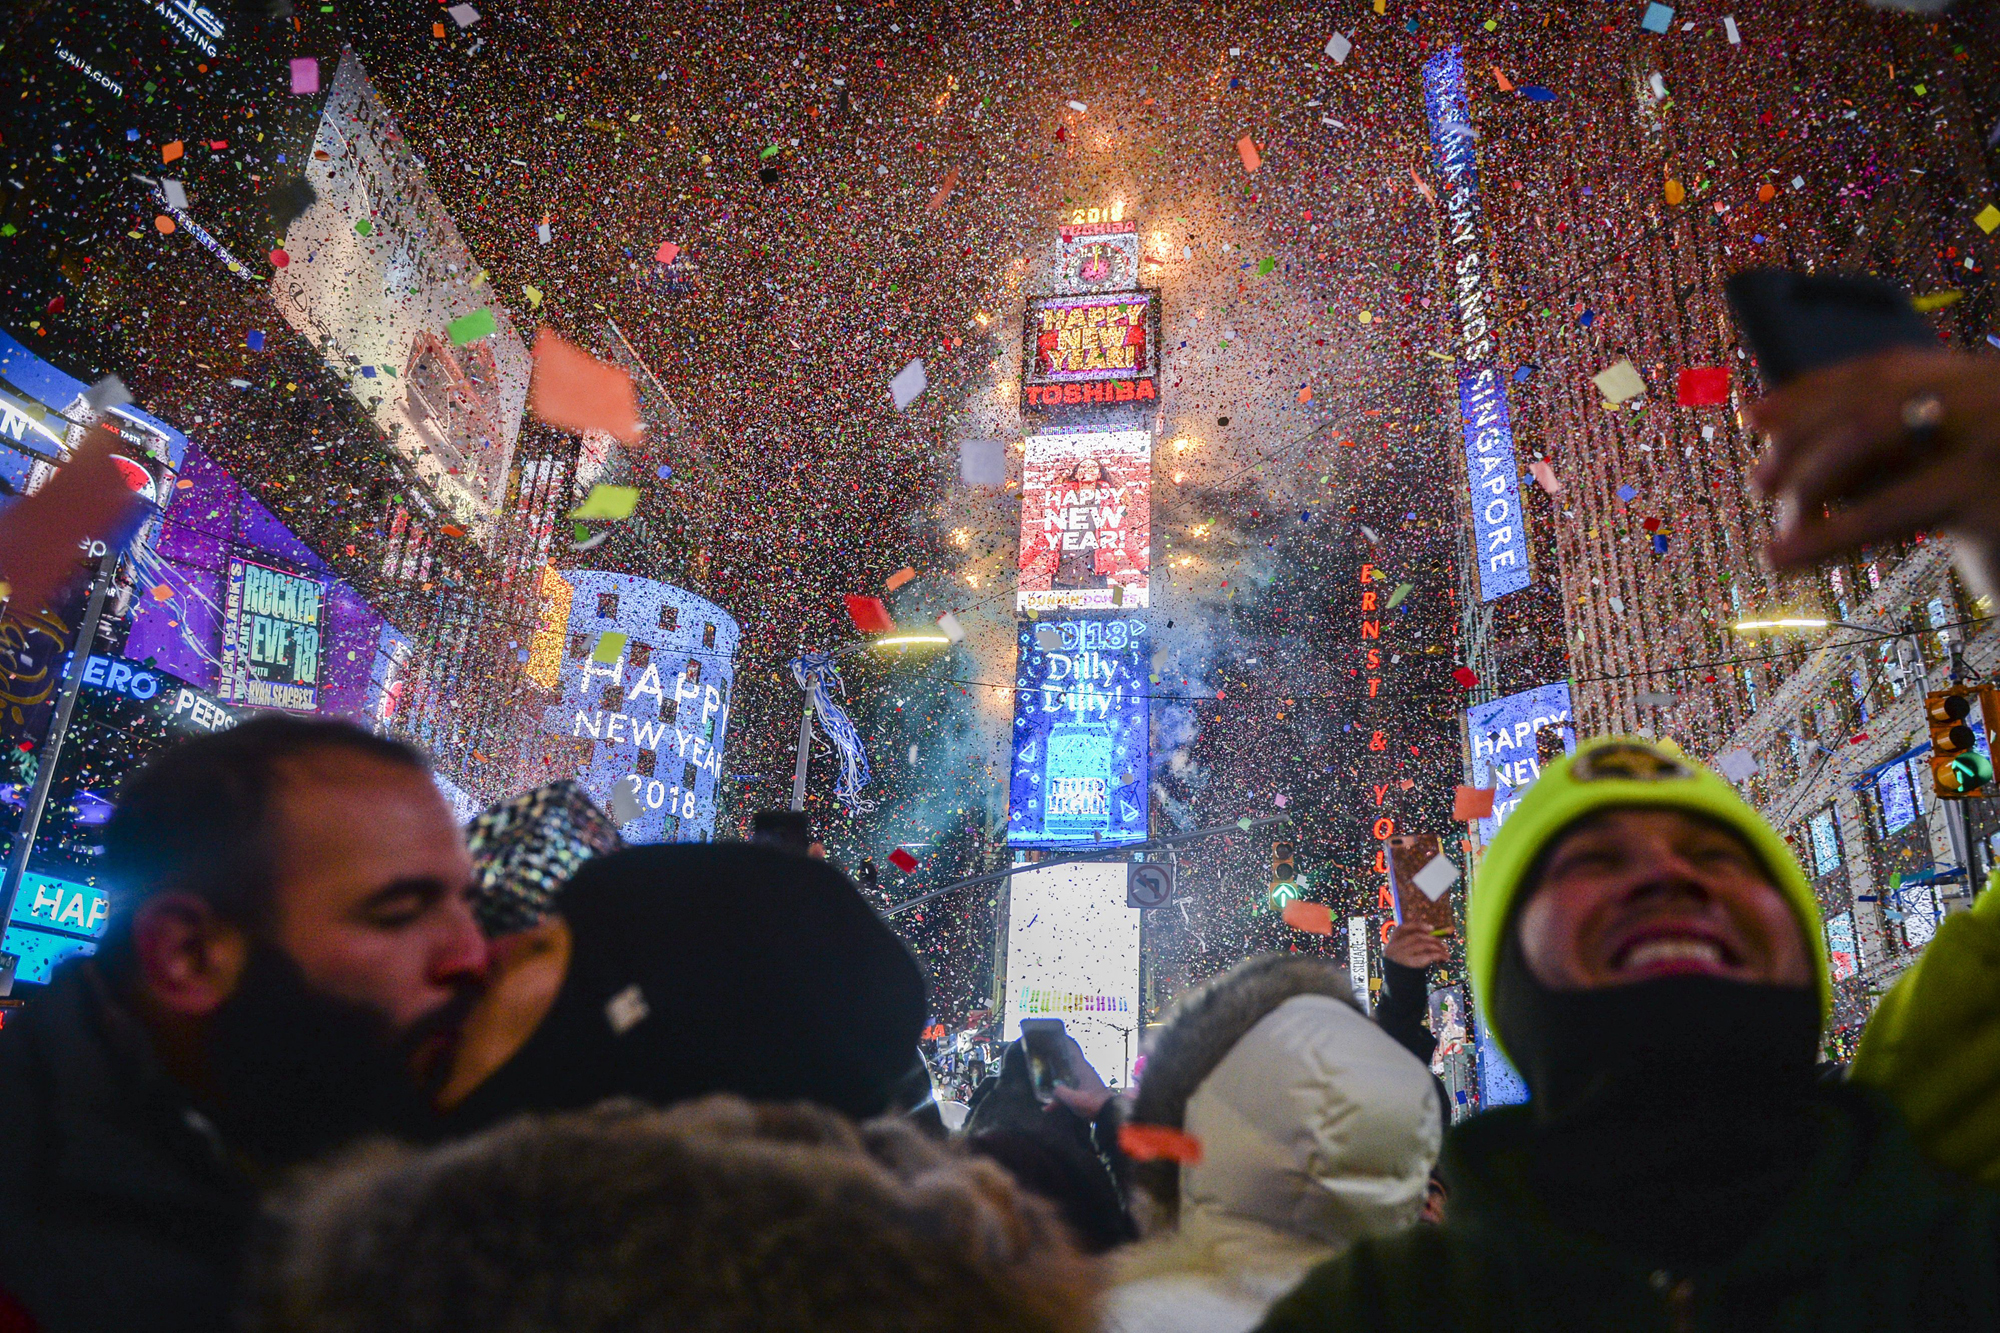 NYC New Year, New York, USA - 01 Jan 2018